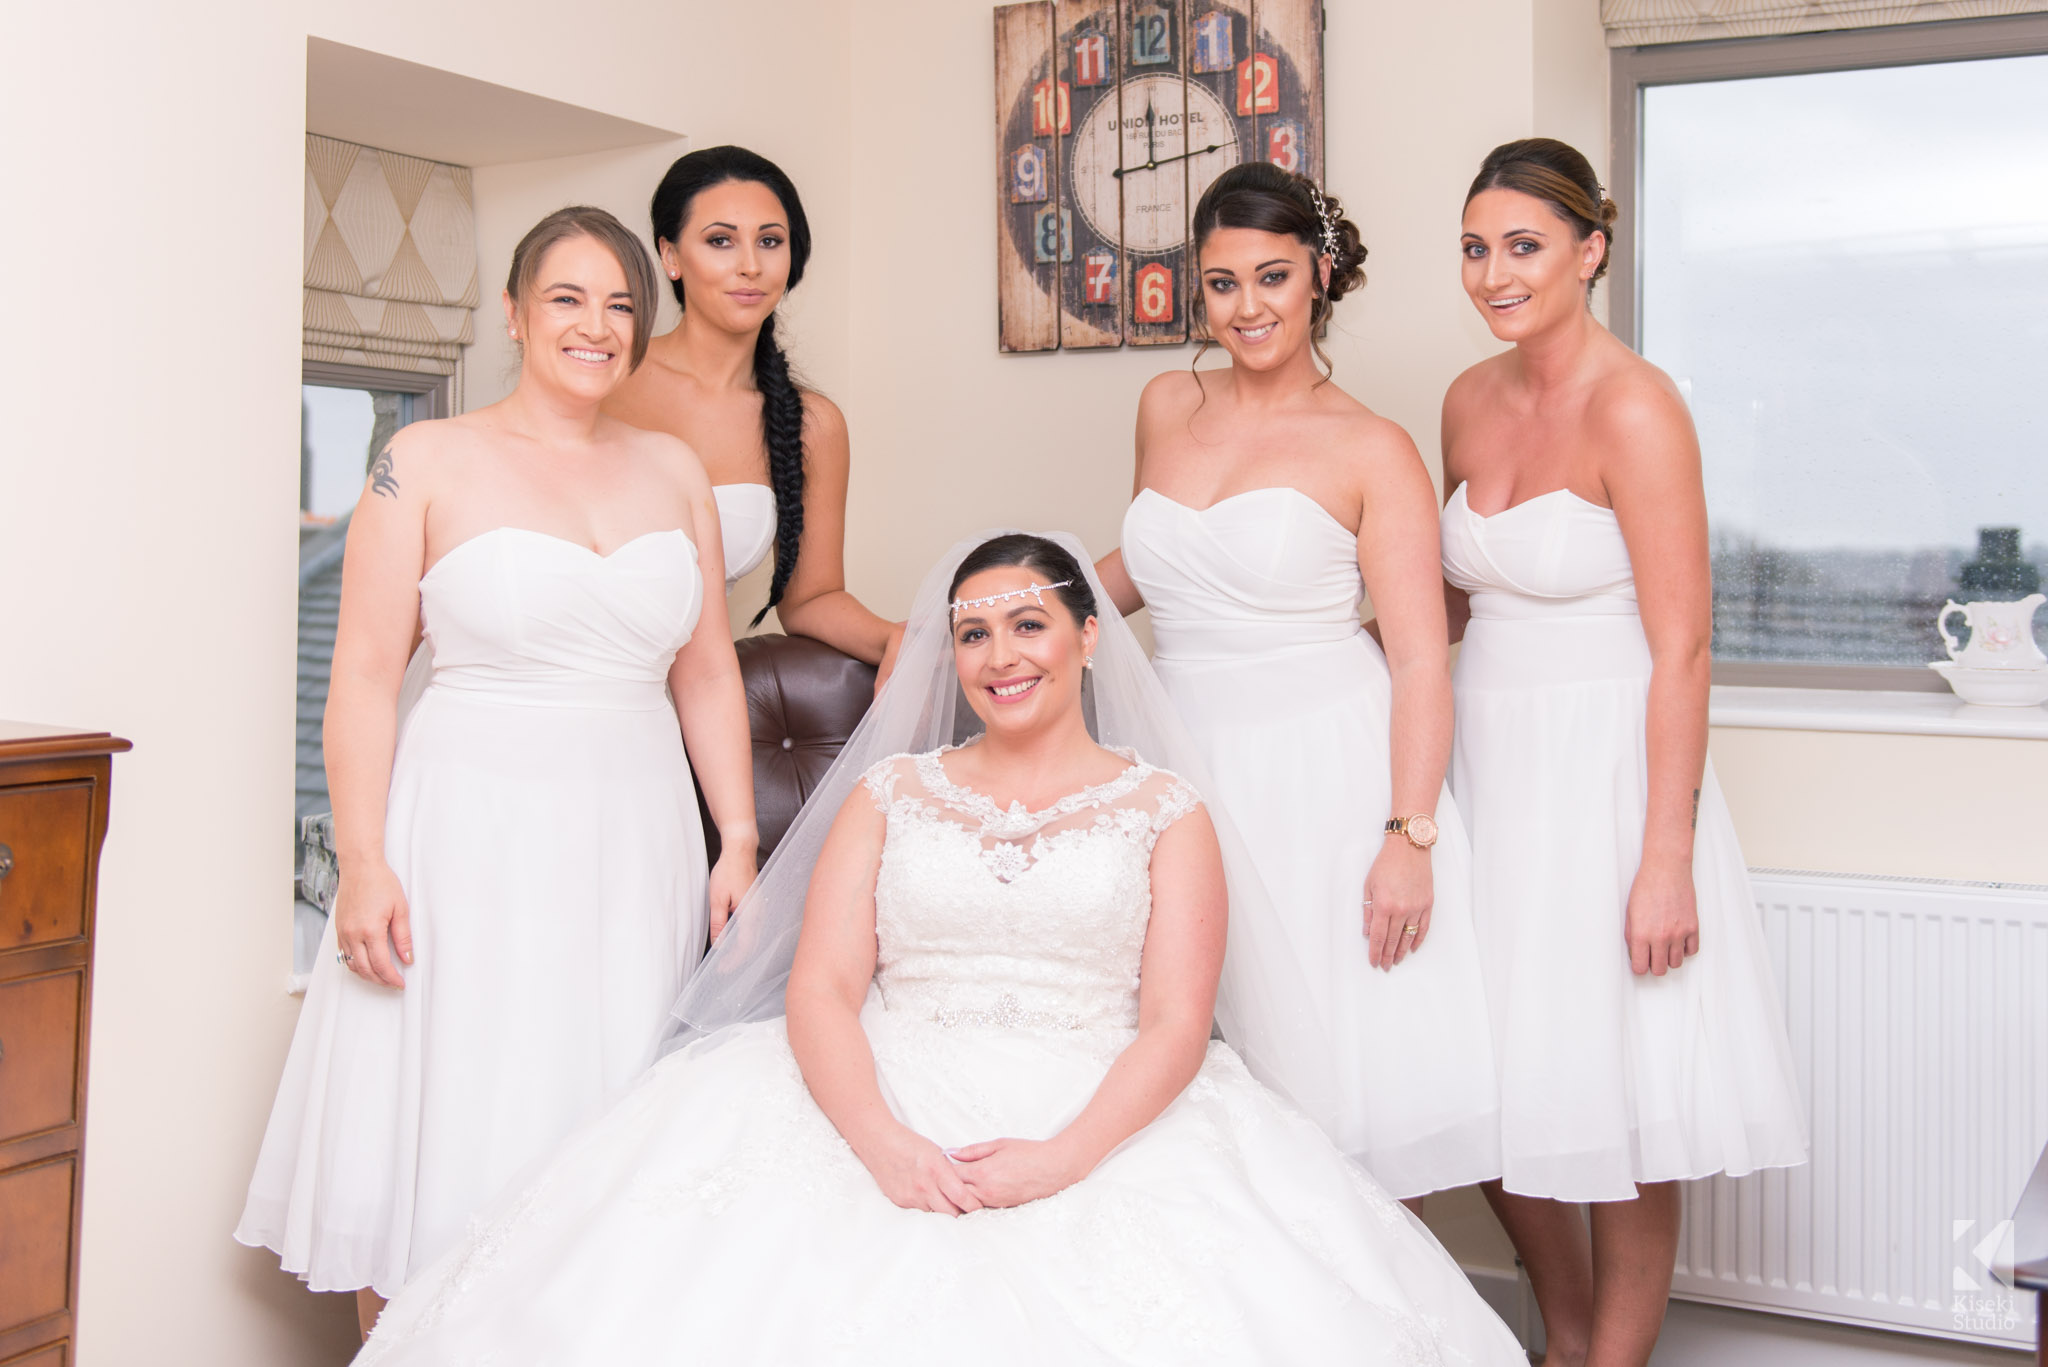 Bride and Bridesmaids together